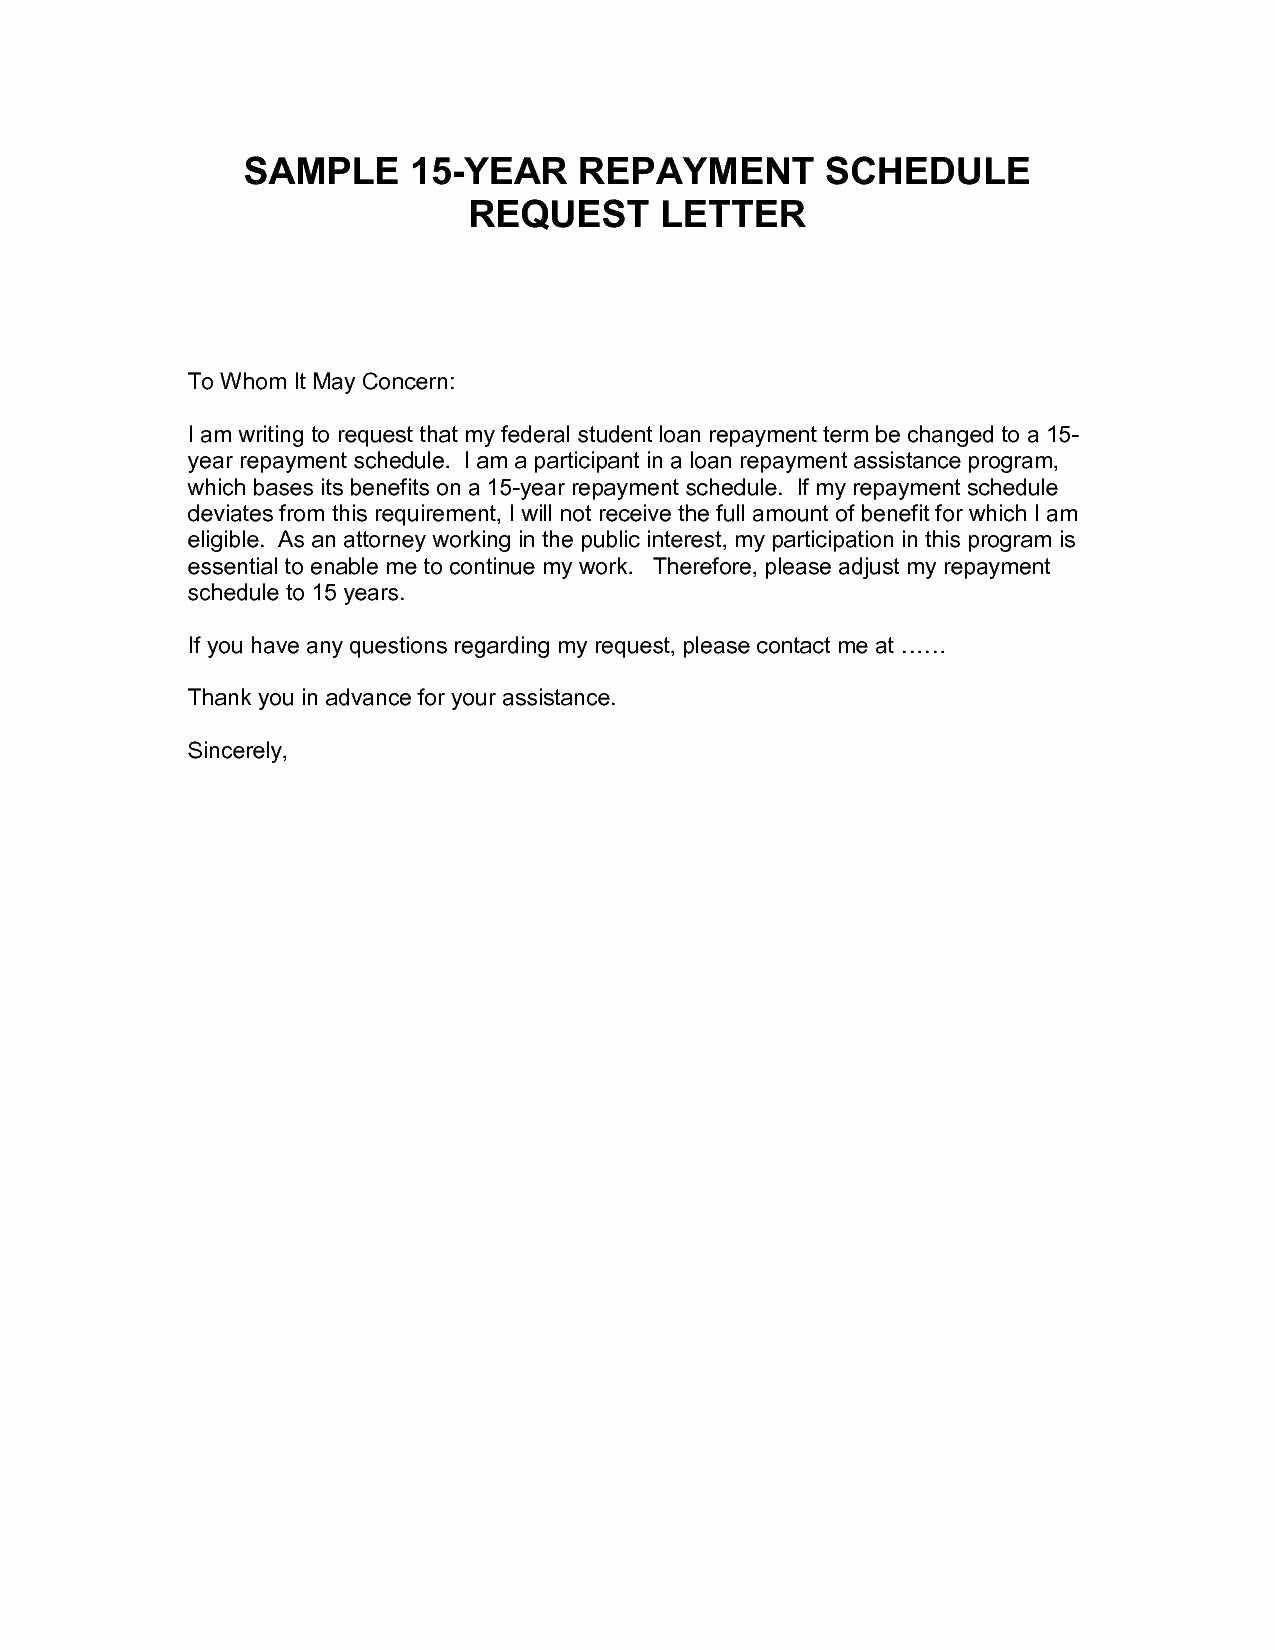 Personal Loan Letter format Elegant Personal Loan Repayment Letter Template Download